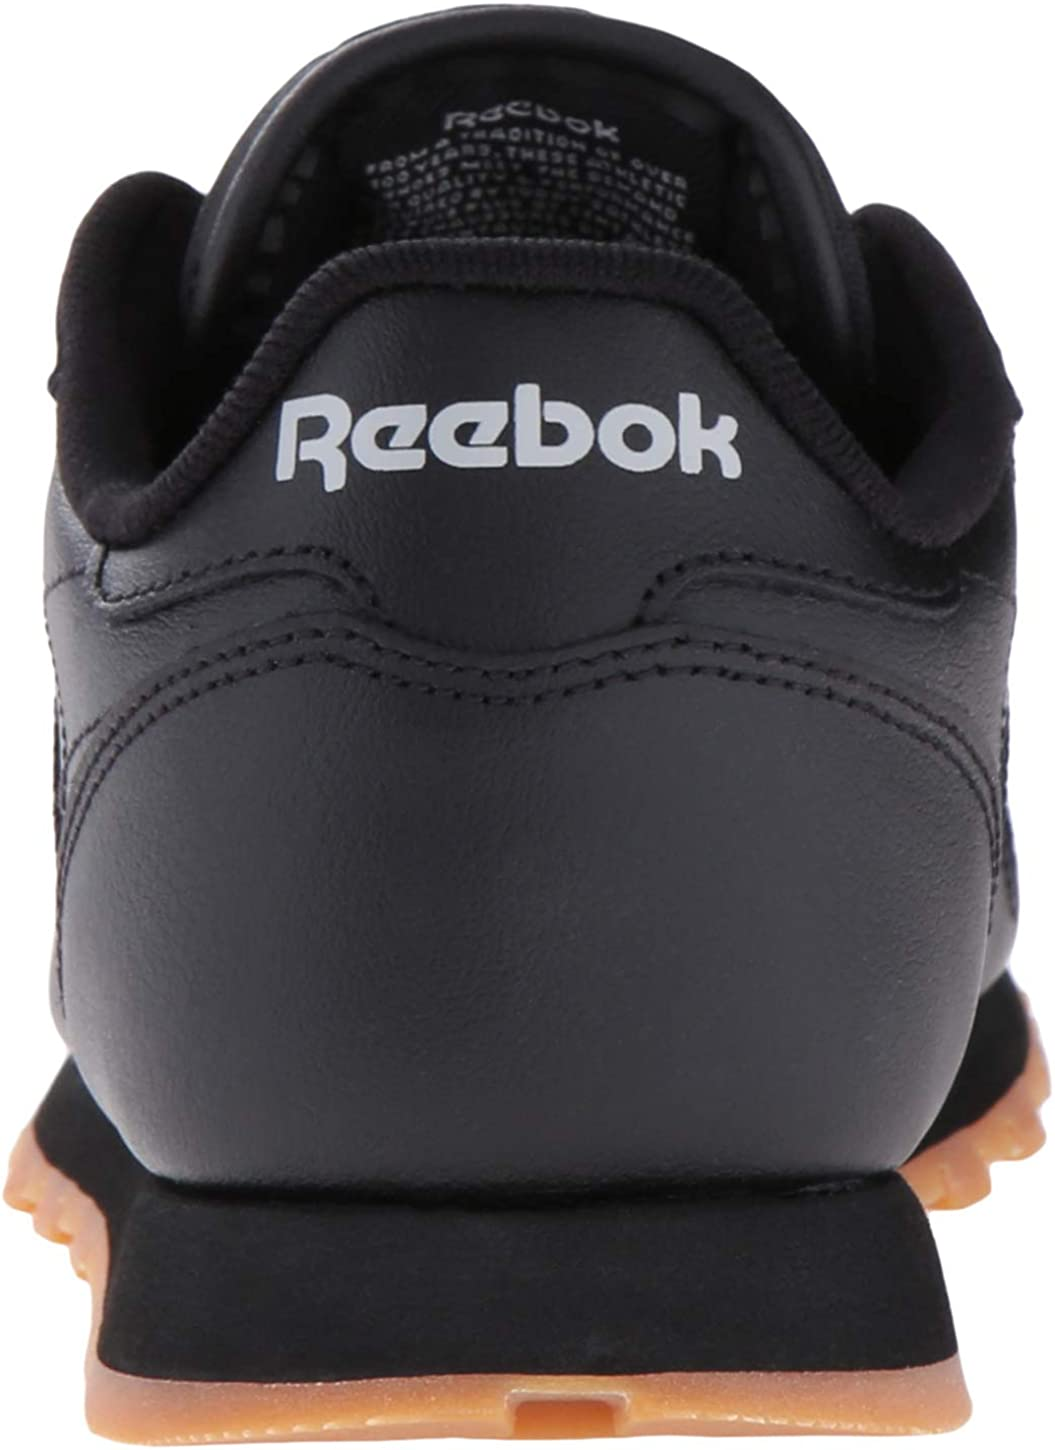 Reebok Kids Classic Leather Sneaker